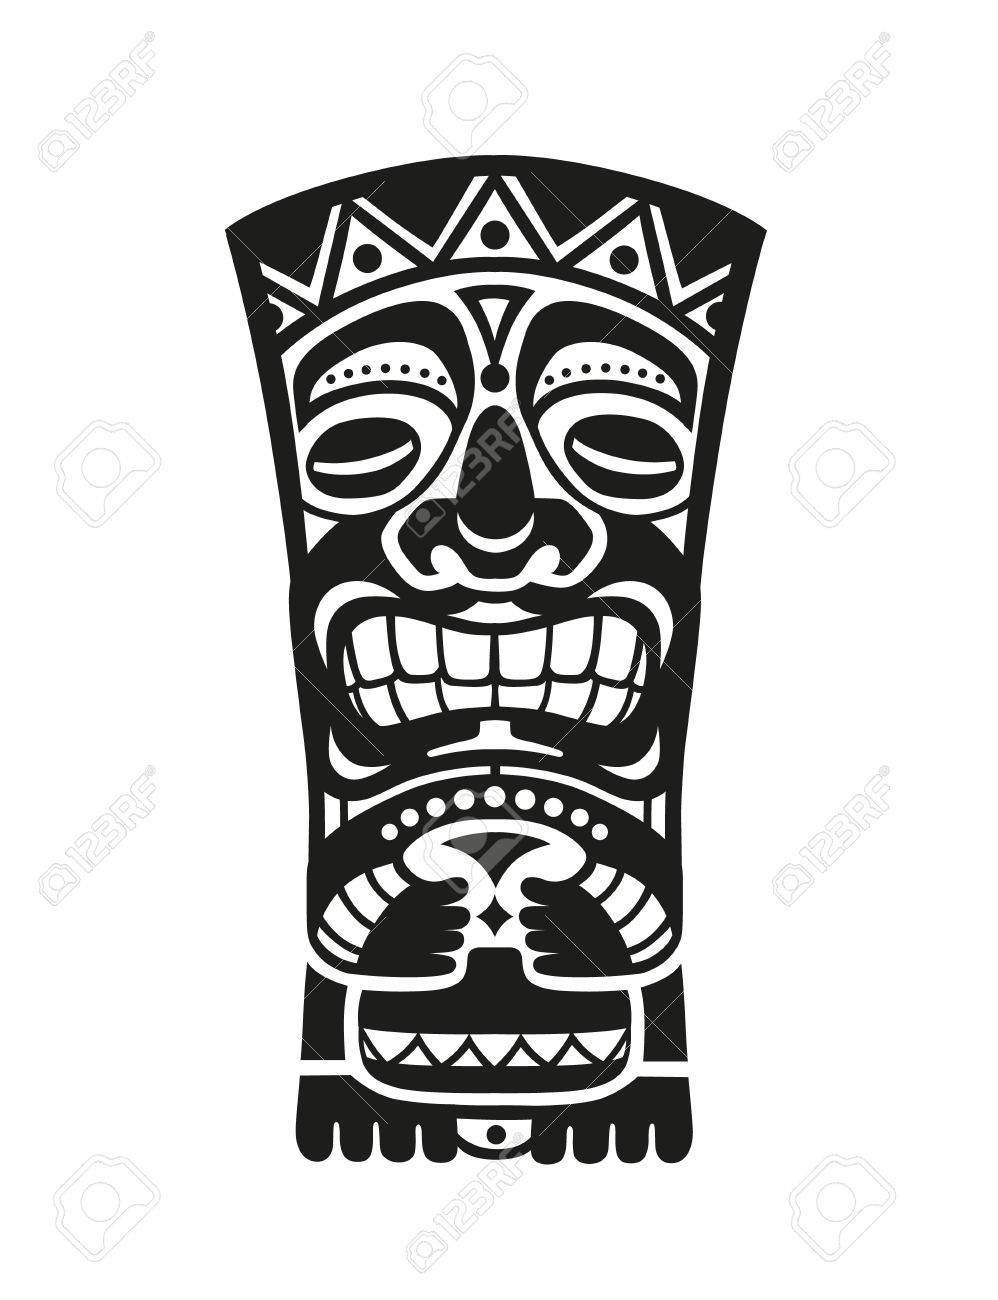 Sticker in ethnic style. Black and white mask of Tiki totem...